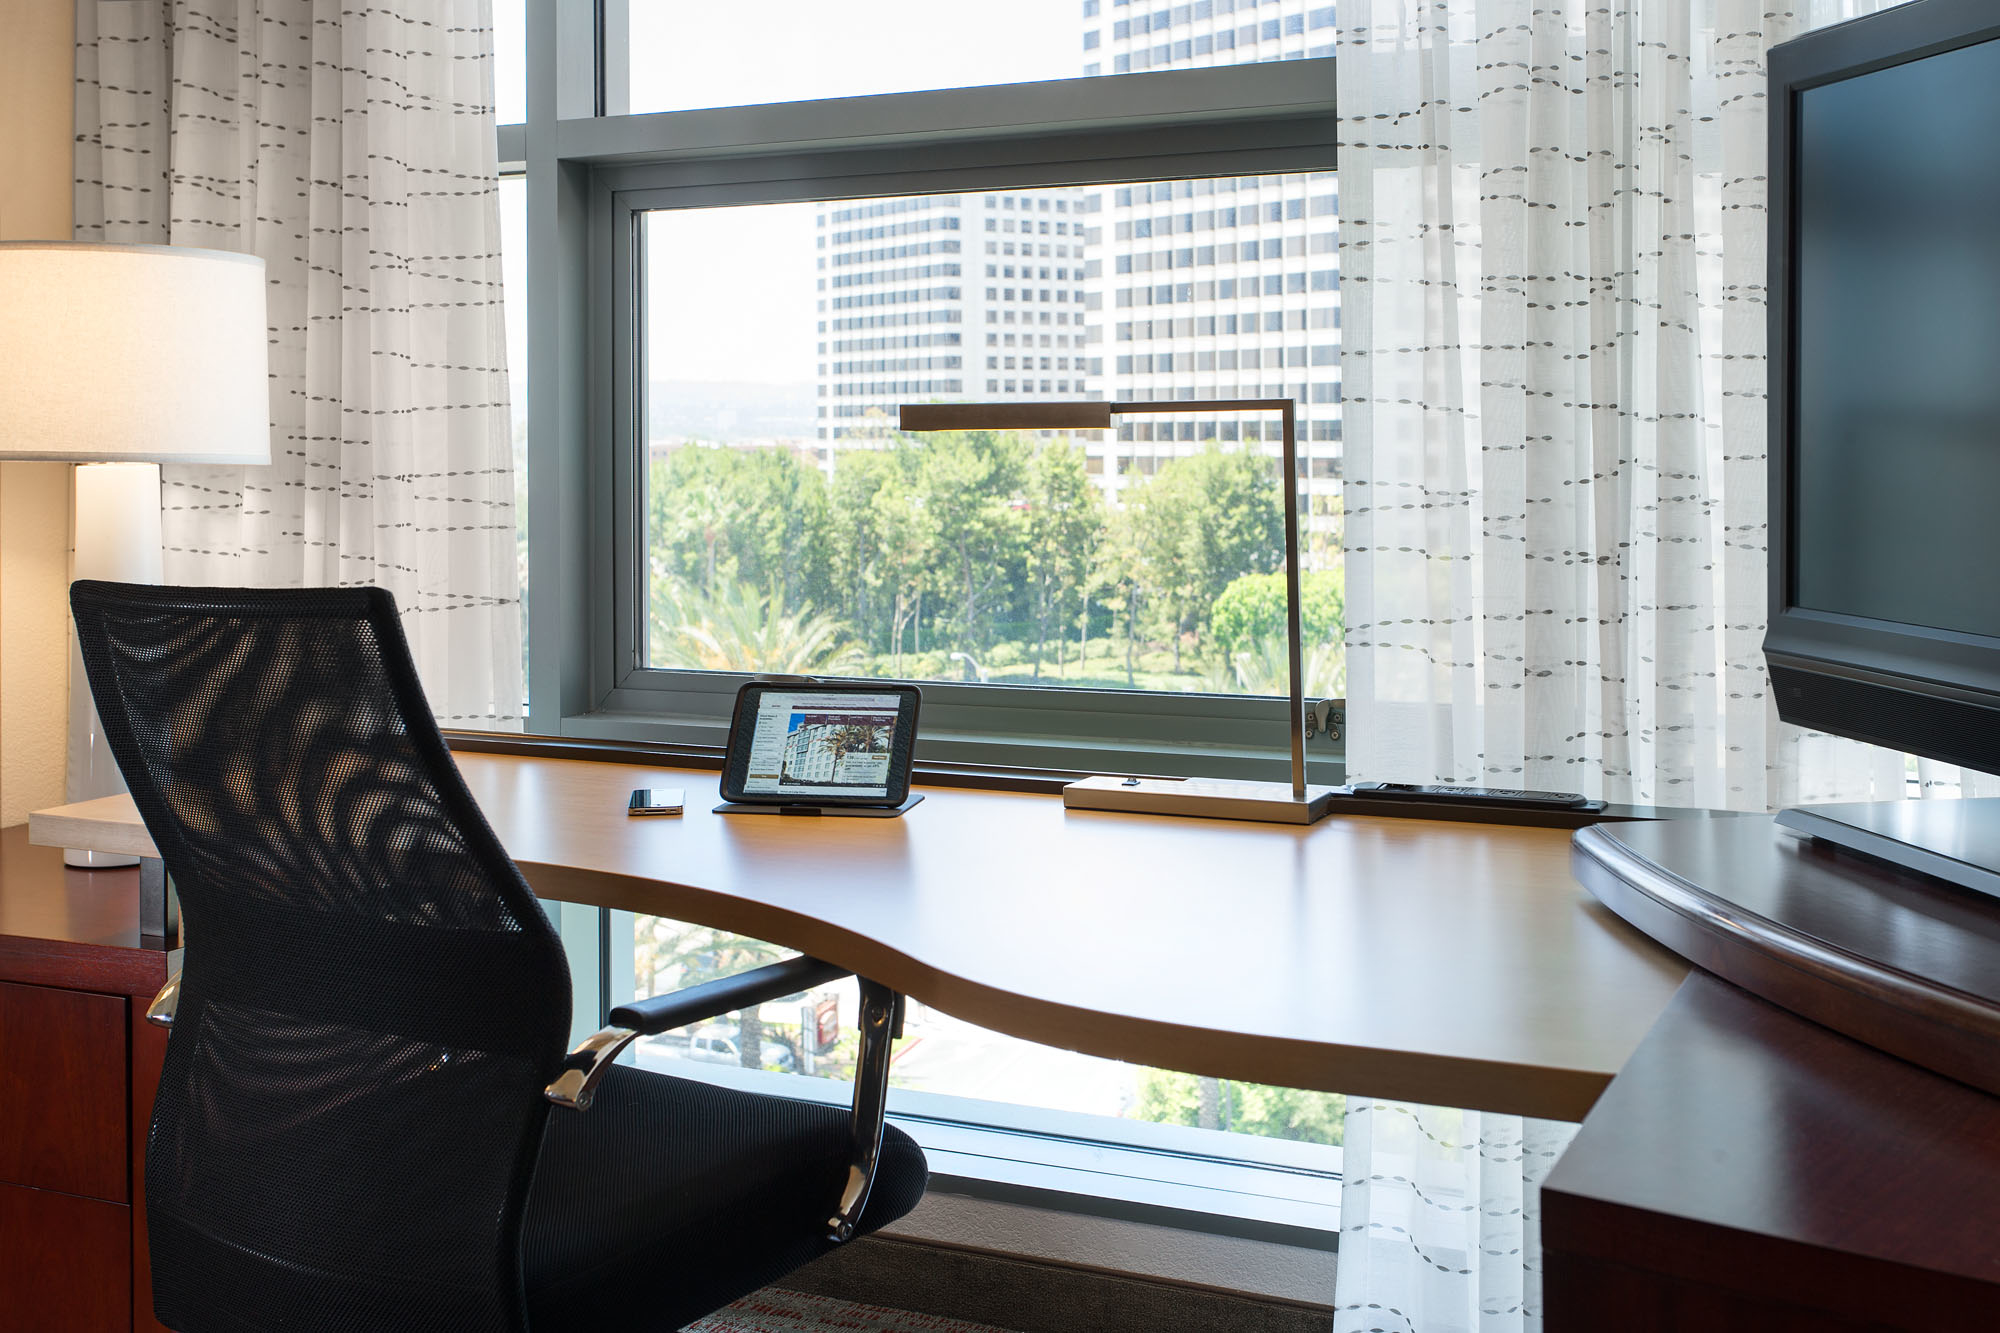 Suite Work Desk - Our spacious guest suites feature a well-lit work area. Stay productive with our large desks, ergonomic chairs and complimentary high-speed Internet.